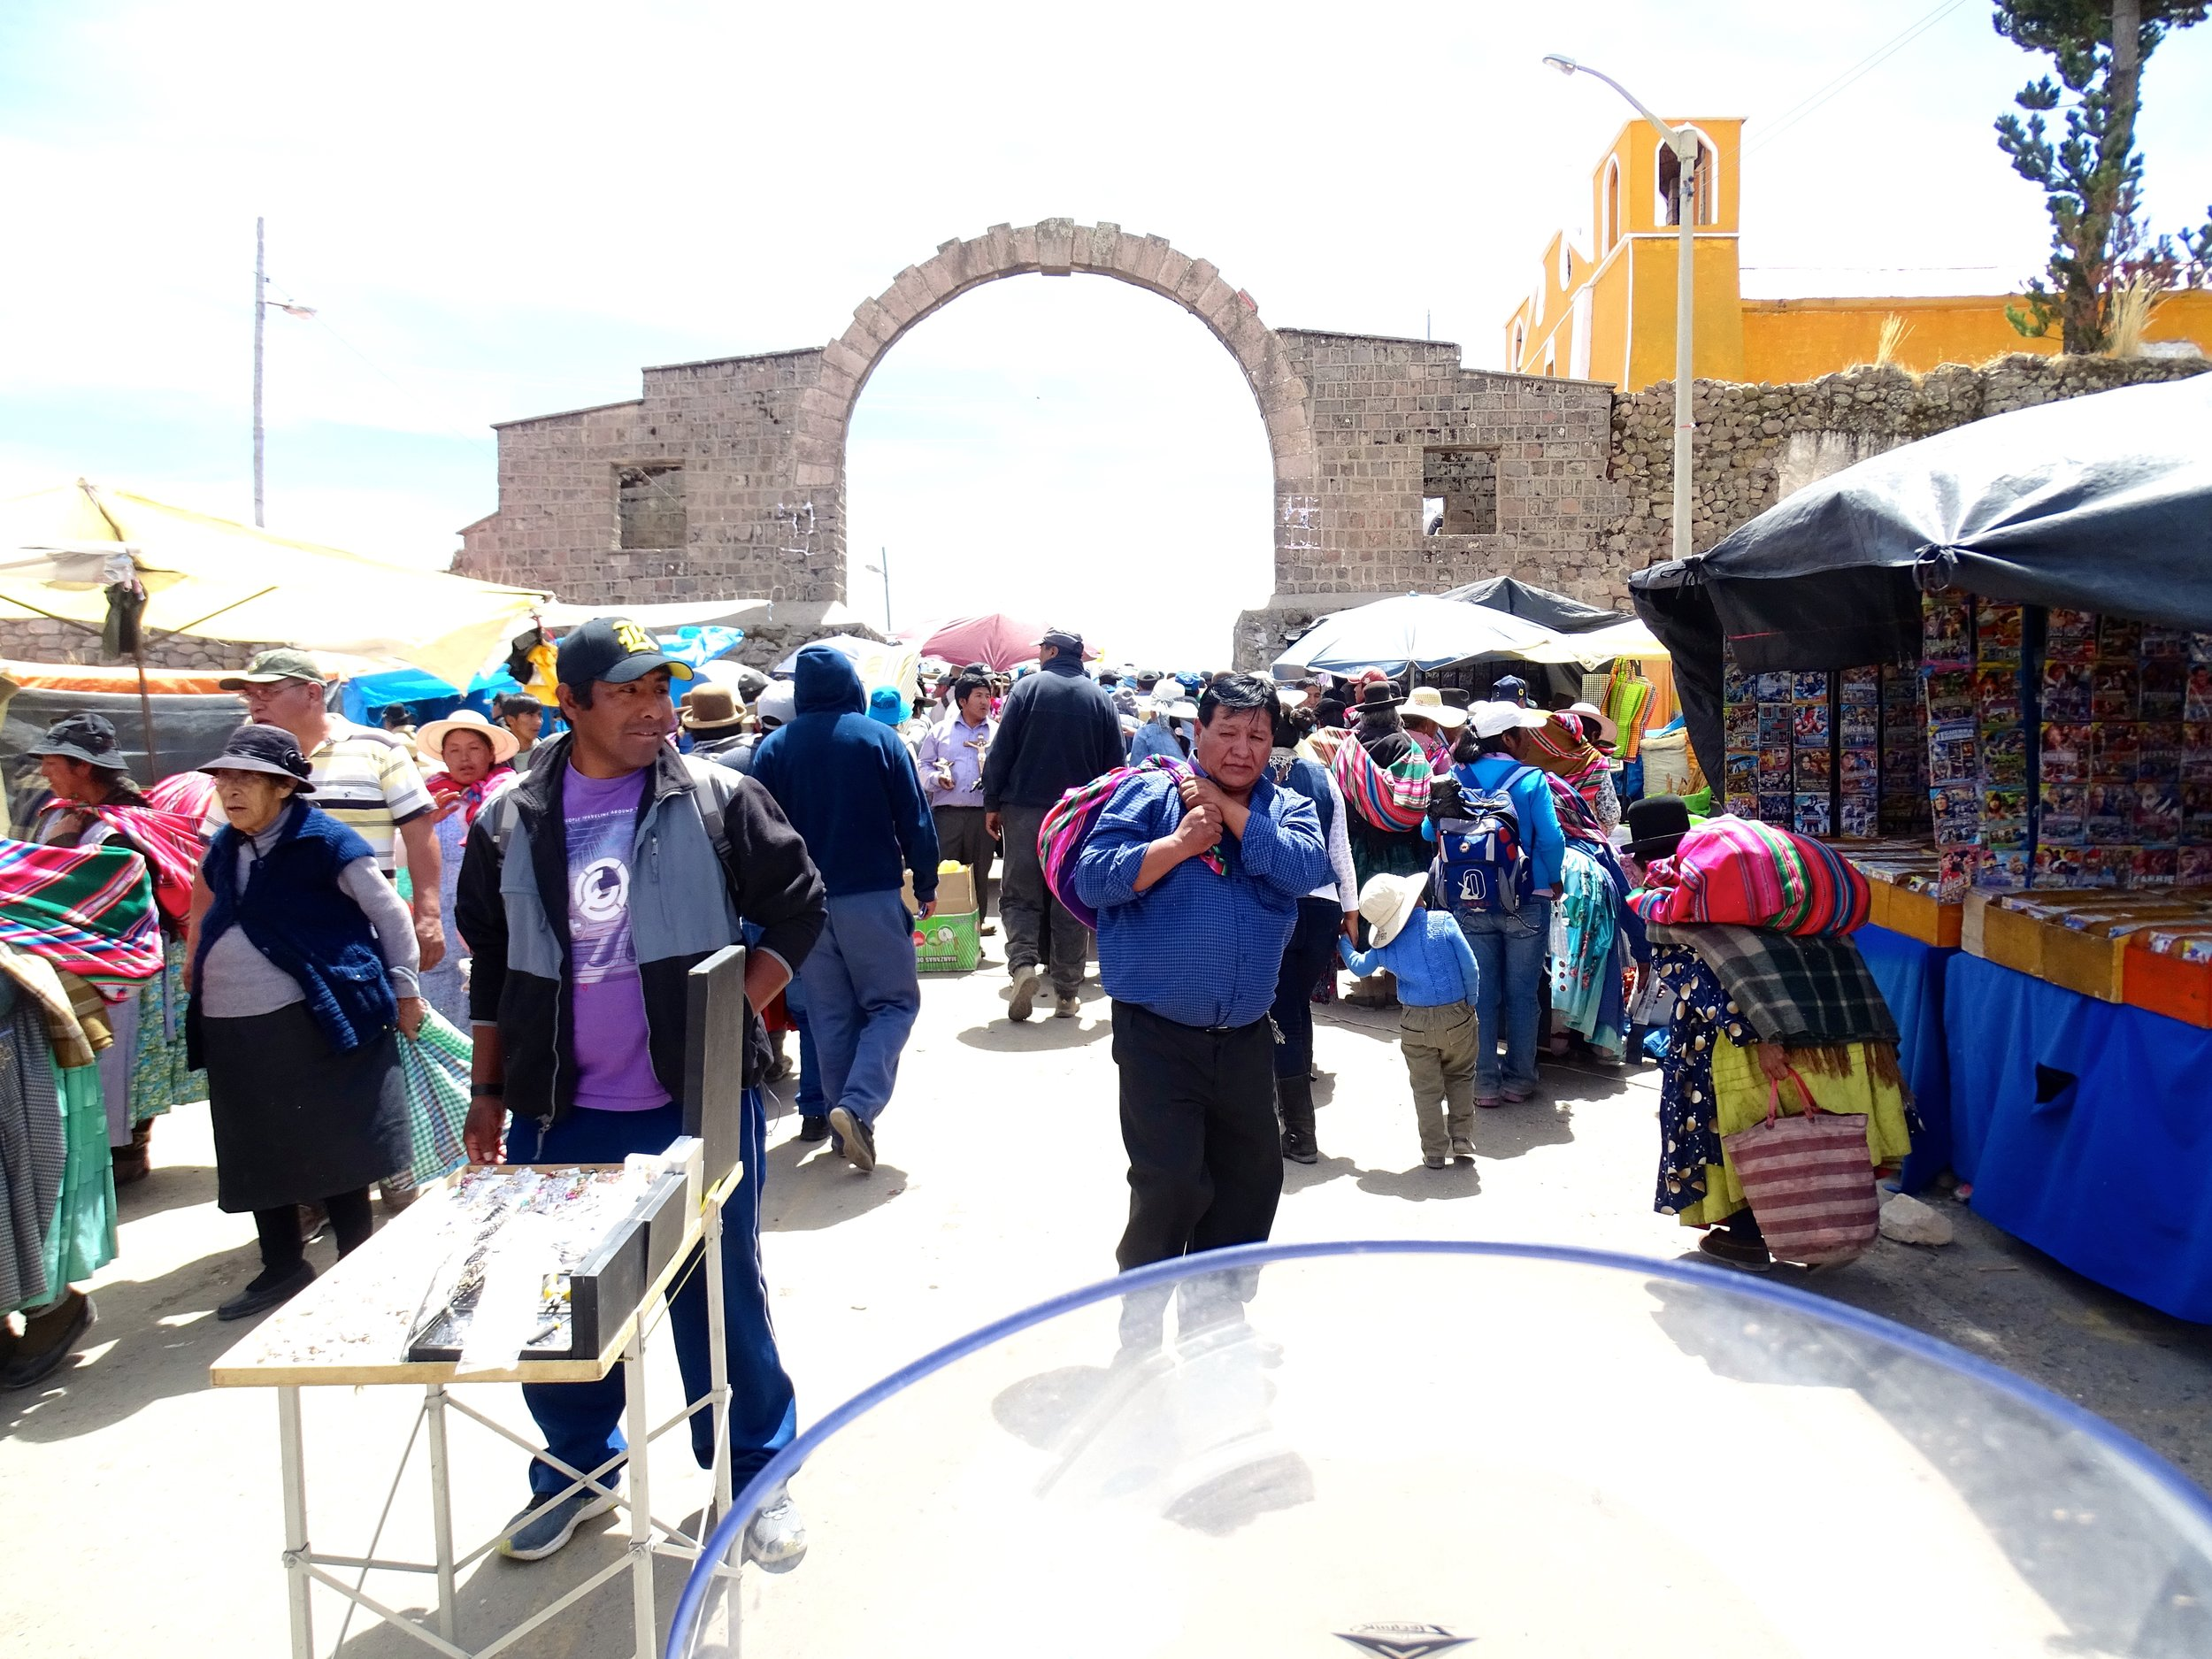 Everything funneled into one street, which led under this stone arch marking the border between Peru and Bolivia.